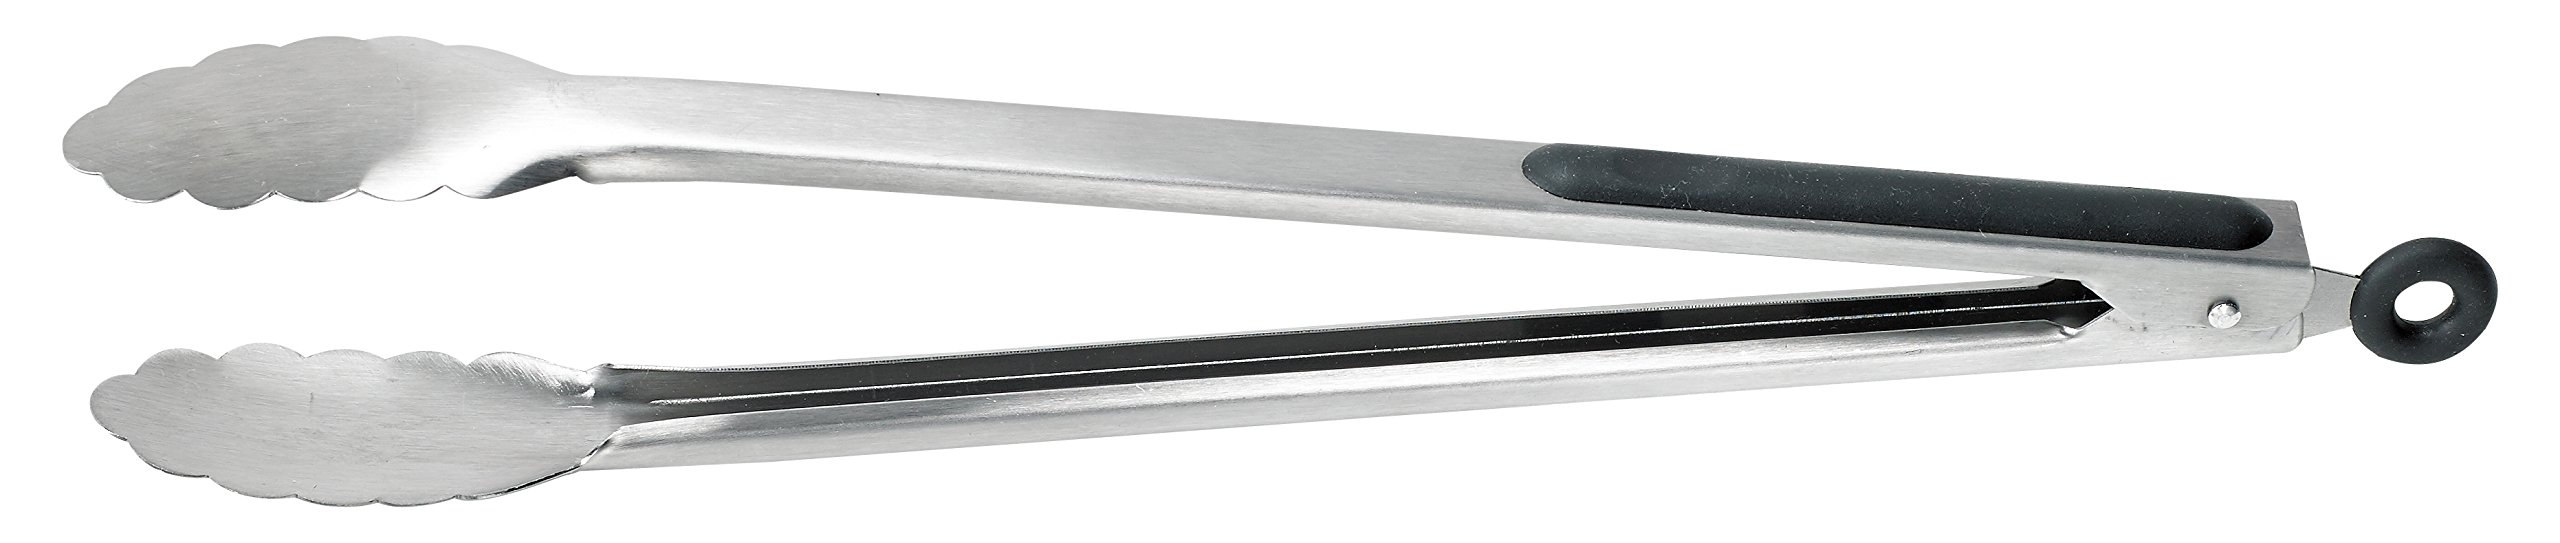 Cutlery-Pro Chef Locking Tong, Professional Quality, 18/8 Stainless Steel, 9-Inches